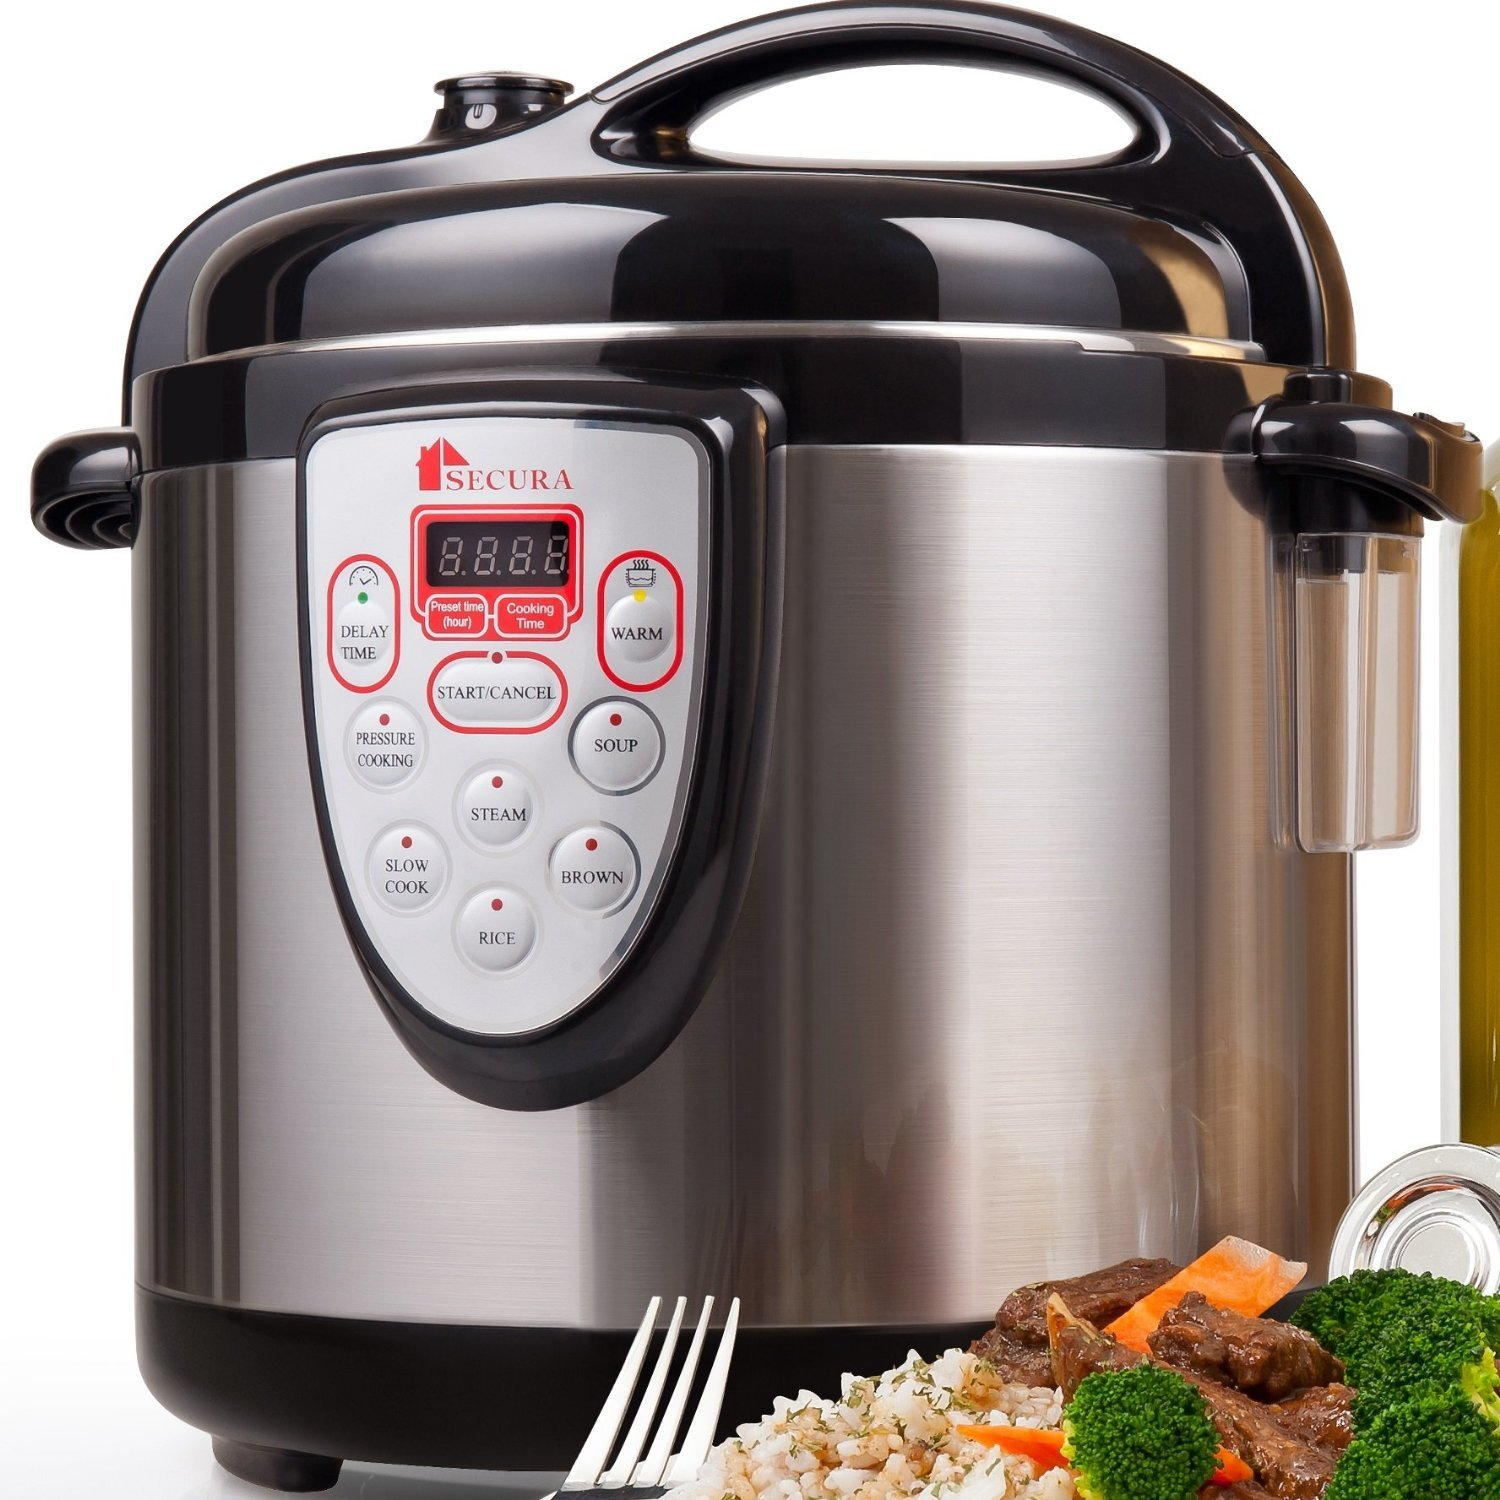 Pressure cooker bed bath beyond - Amazon Com Secura 6 In 1 Programmable Electric Pressure Cooker 6qt 18 10 Stainless Steel Cooking Pot Kitchen Dining